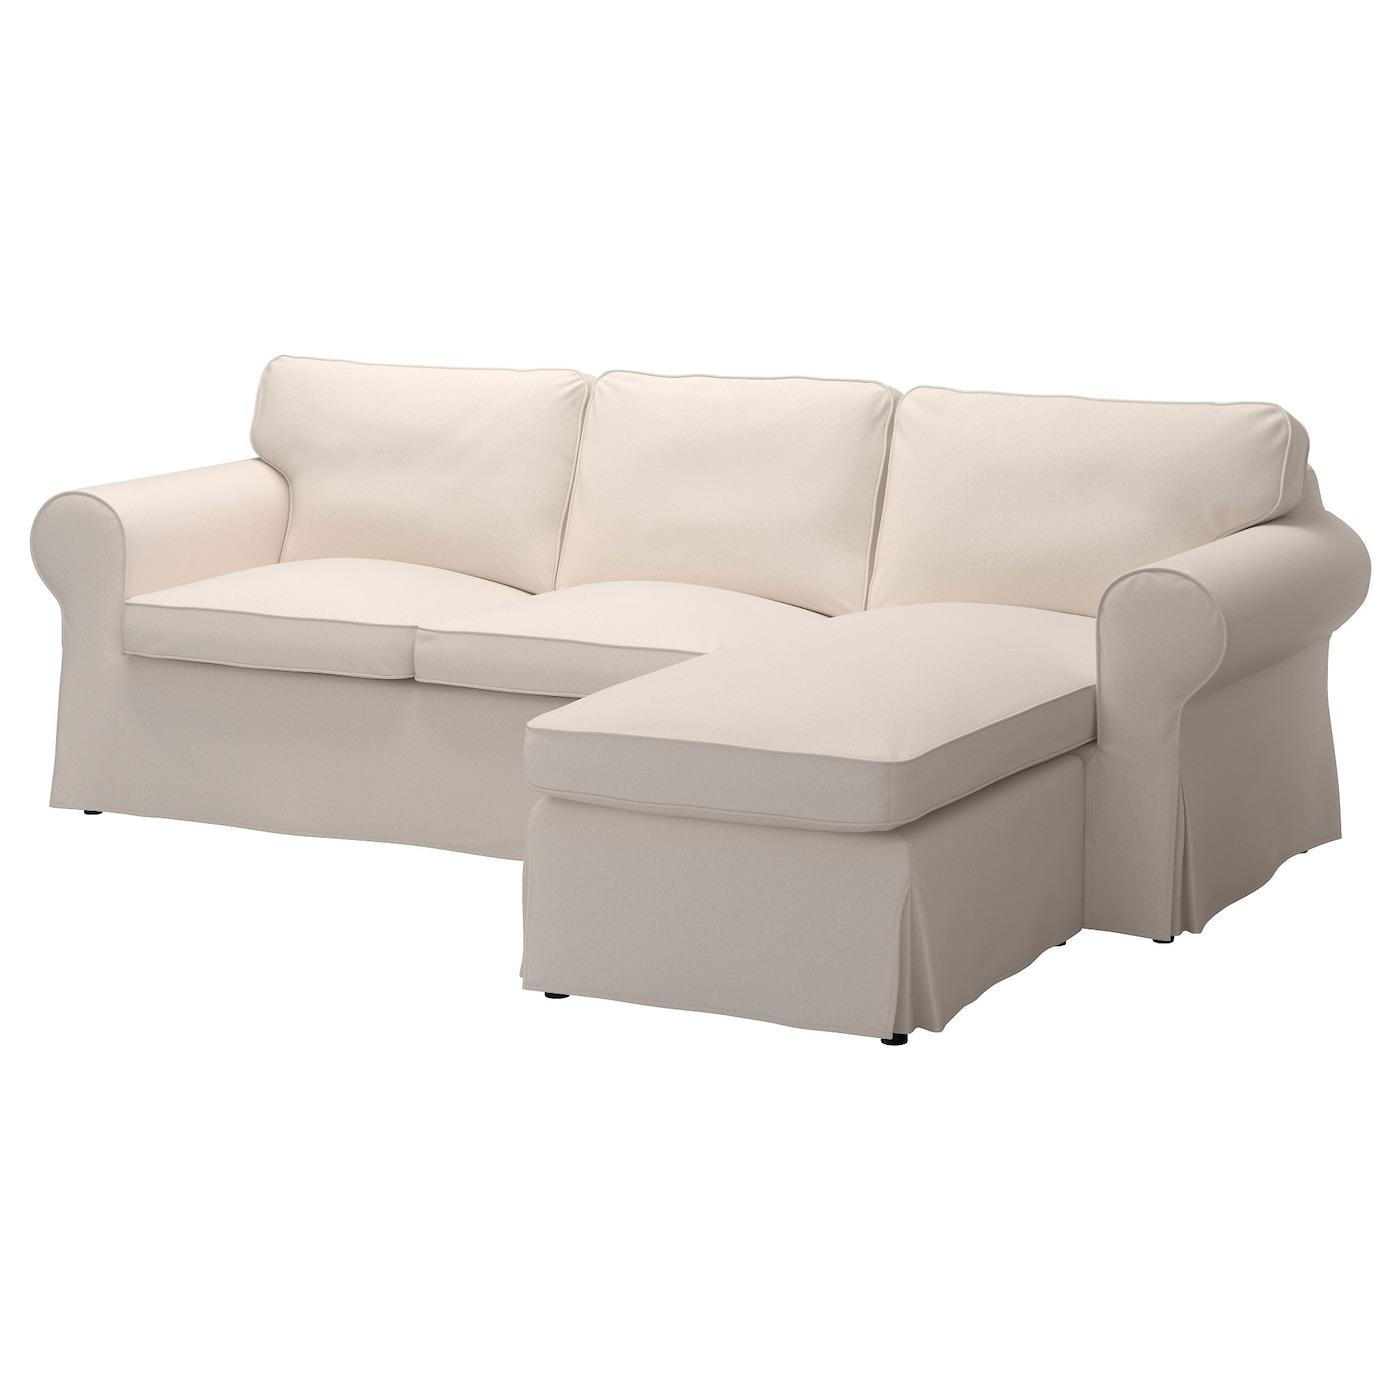 Ektorp 3 seat sofa with chaise longue lofallet beige ikea for Chaise longue style sofa